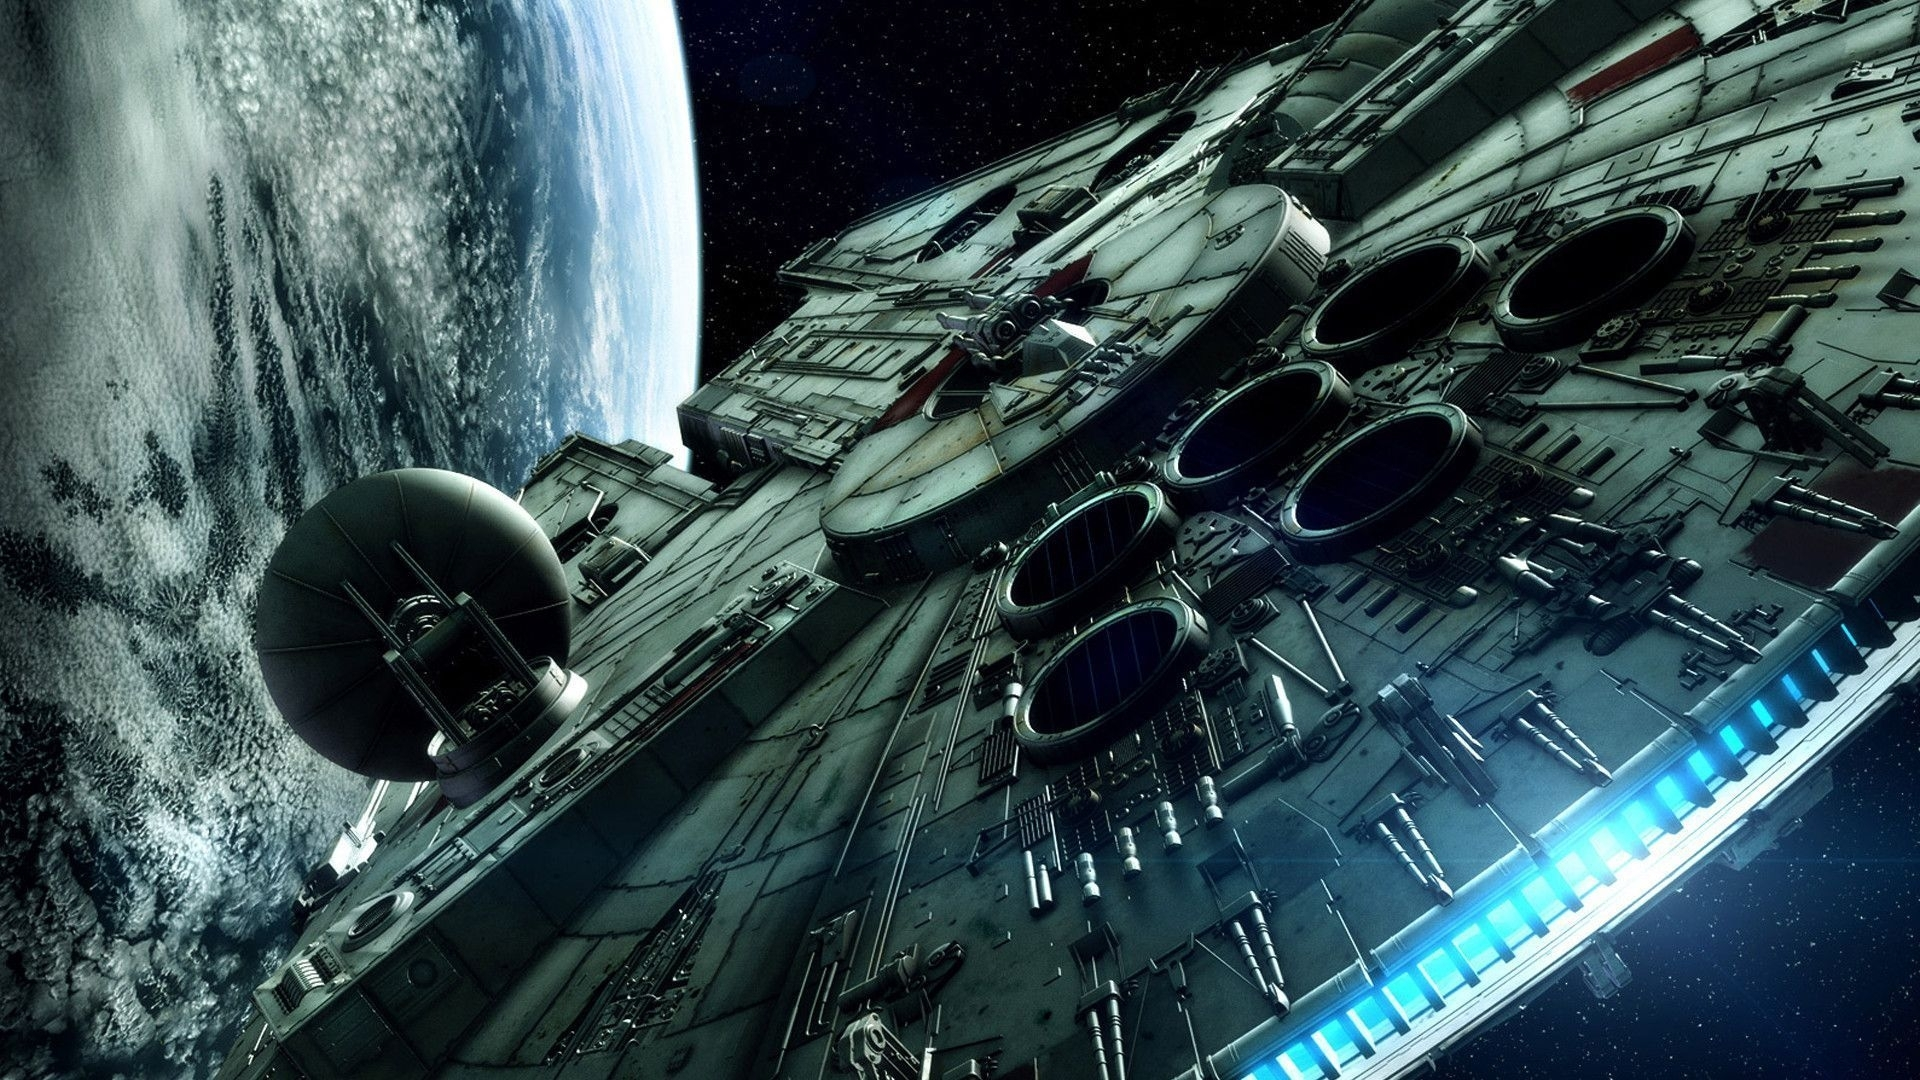 10 Latest High Definition Star Wars Wallpaper FULL HD 1080p For PC Background